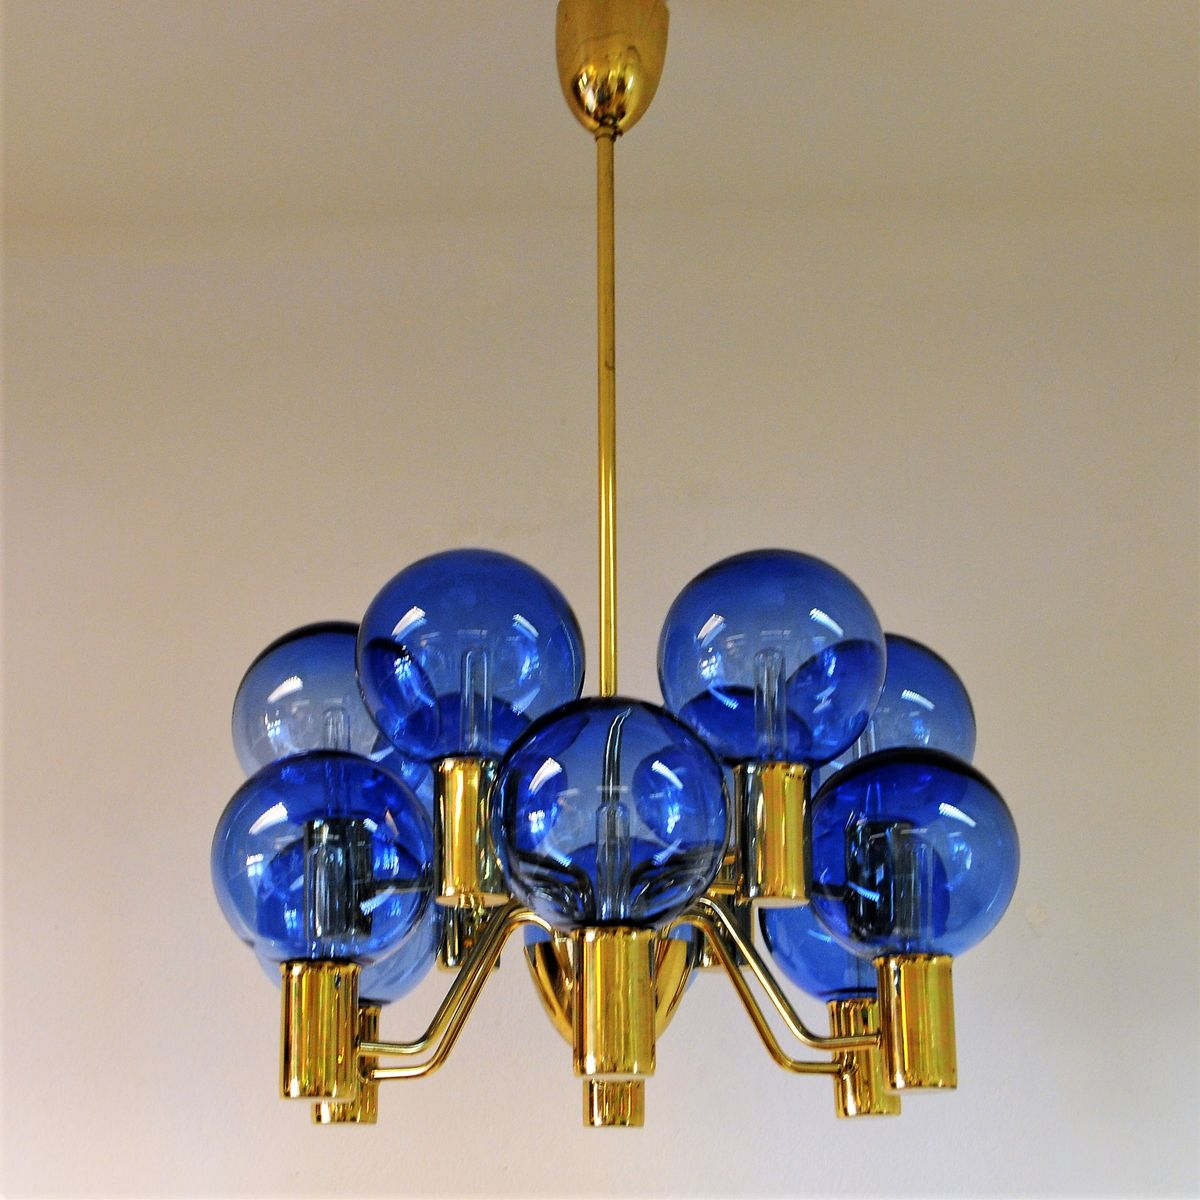 Model t37212 patricia chandelier with blue glass by hans agne model t37212 patricia chandelier with blue glass by hans agne jakobsson 1950s aloadofball Choice Image